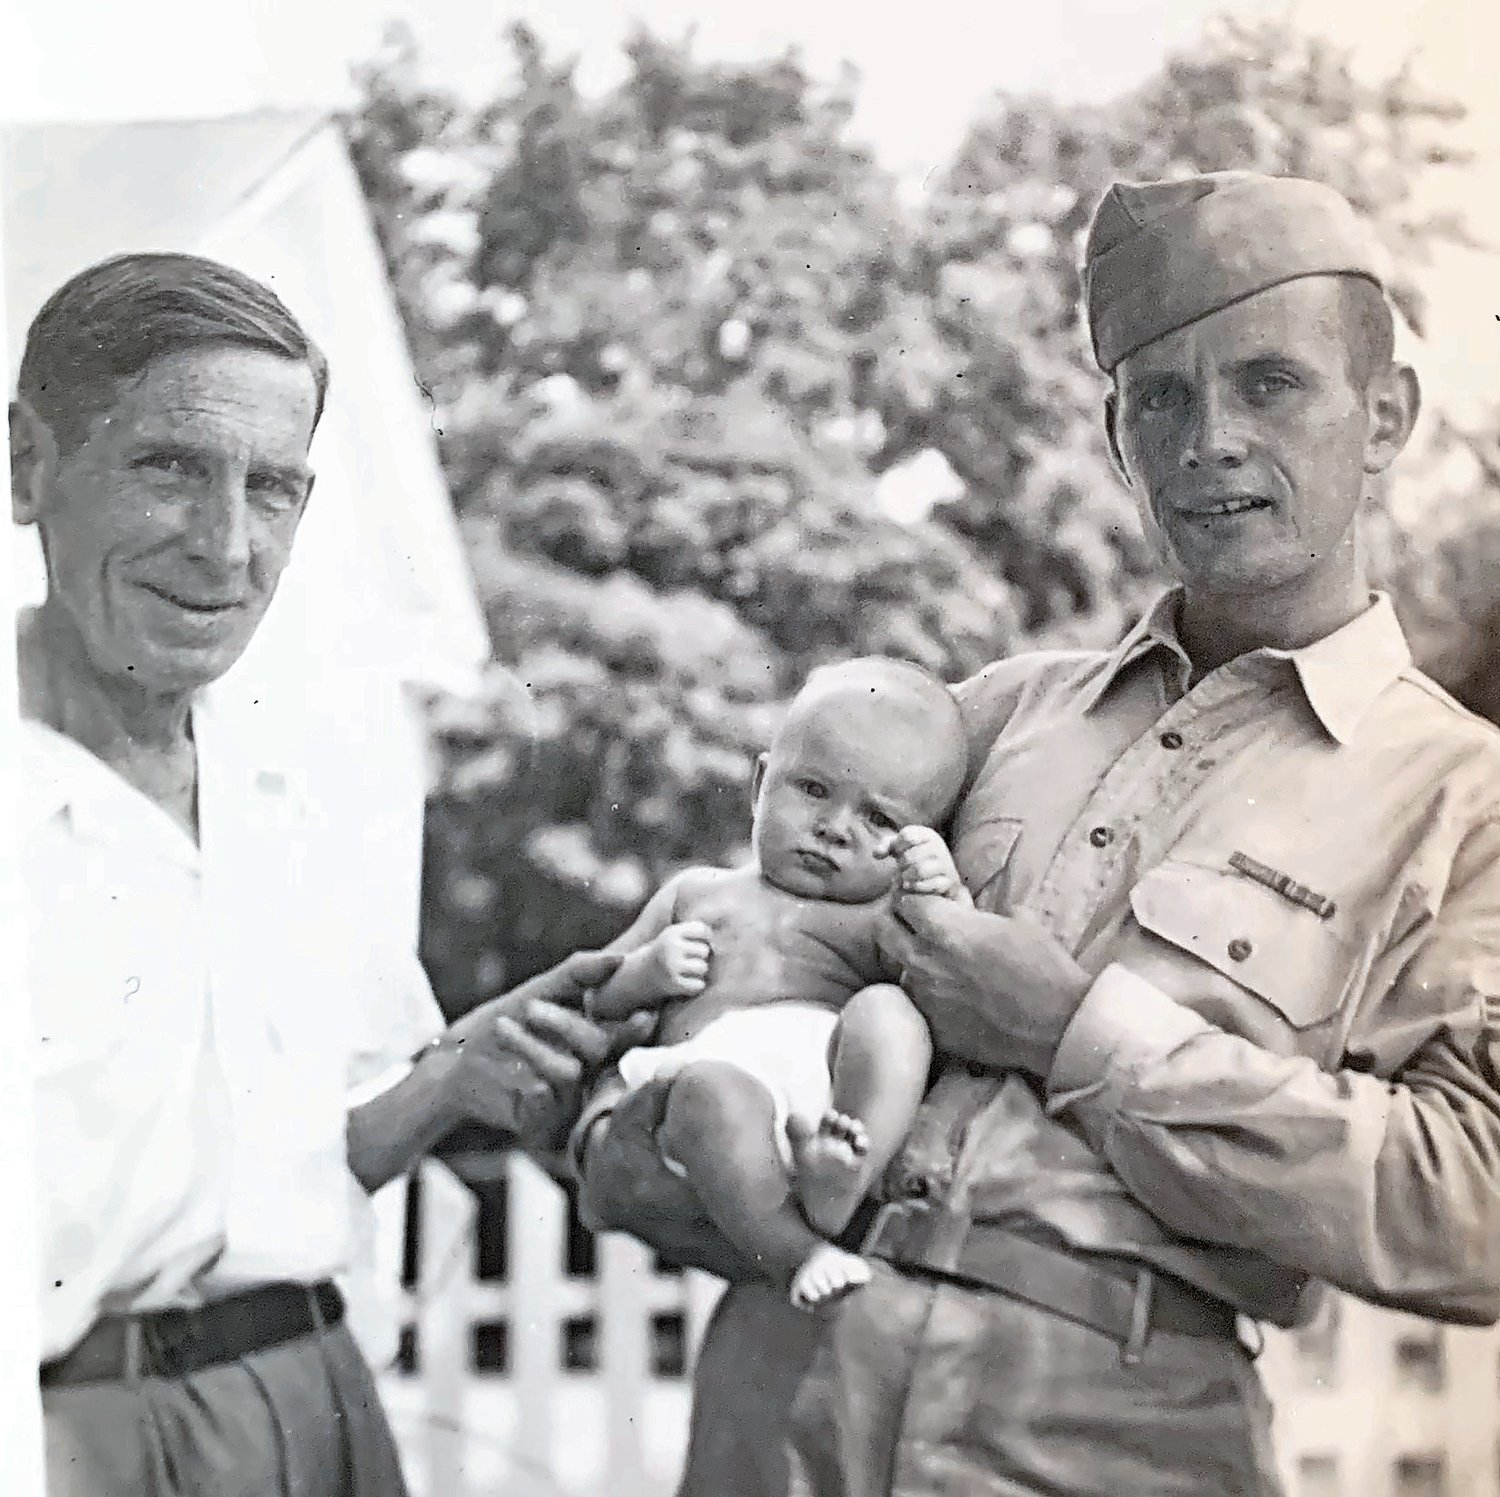 In August 1944, Conlin held his first-born child, Andrew, alongside his father-in-law.